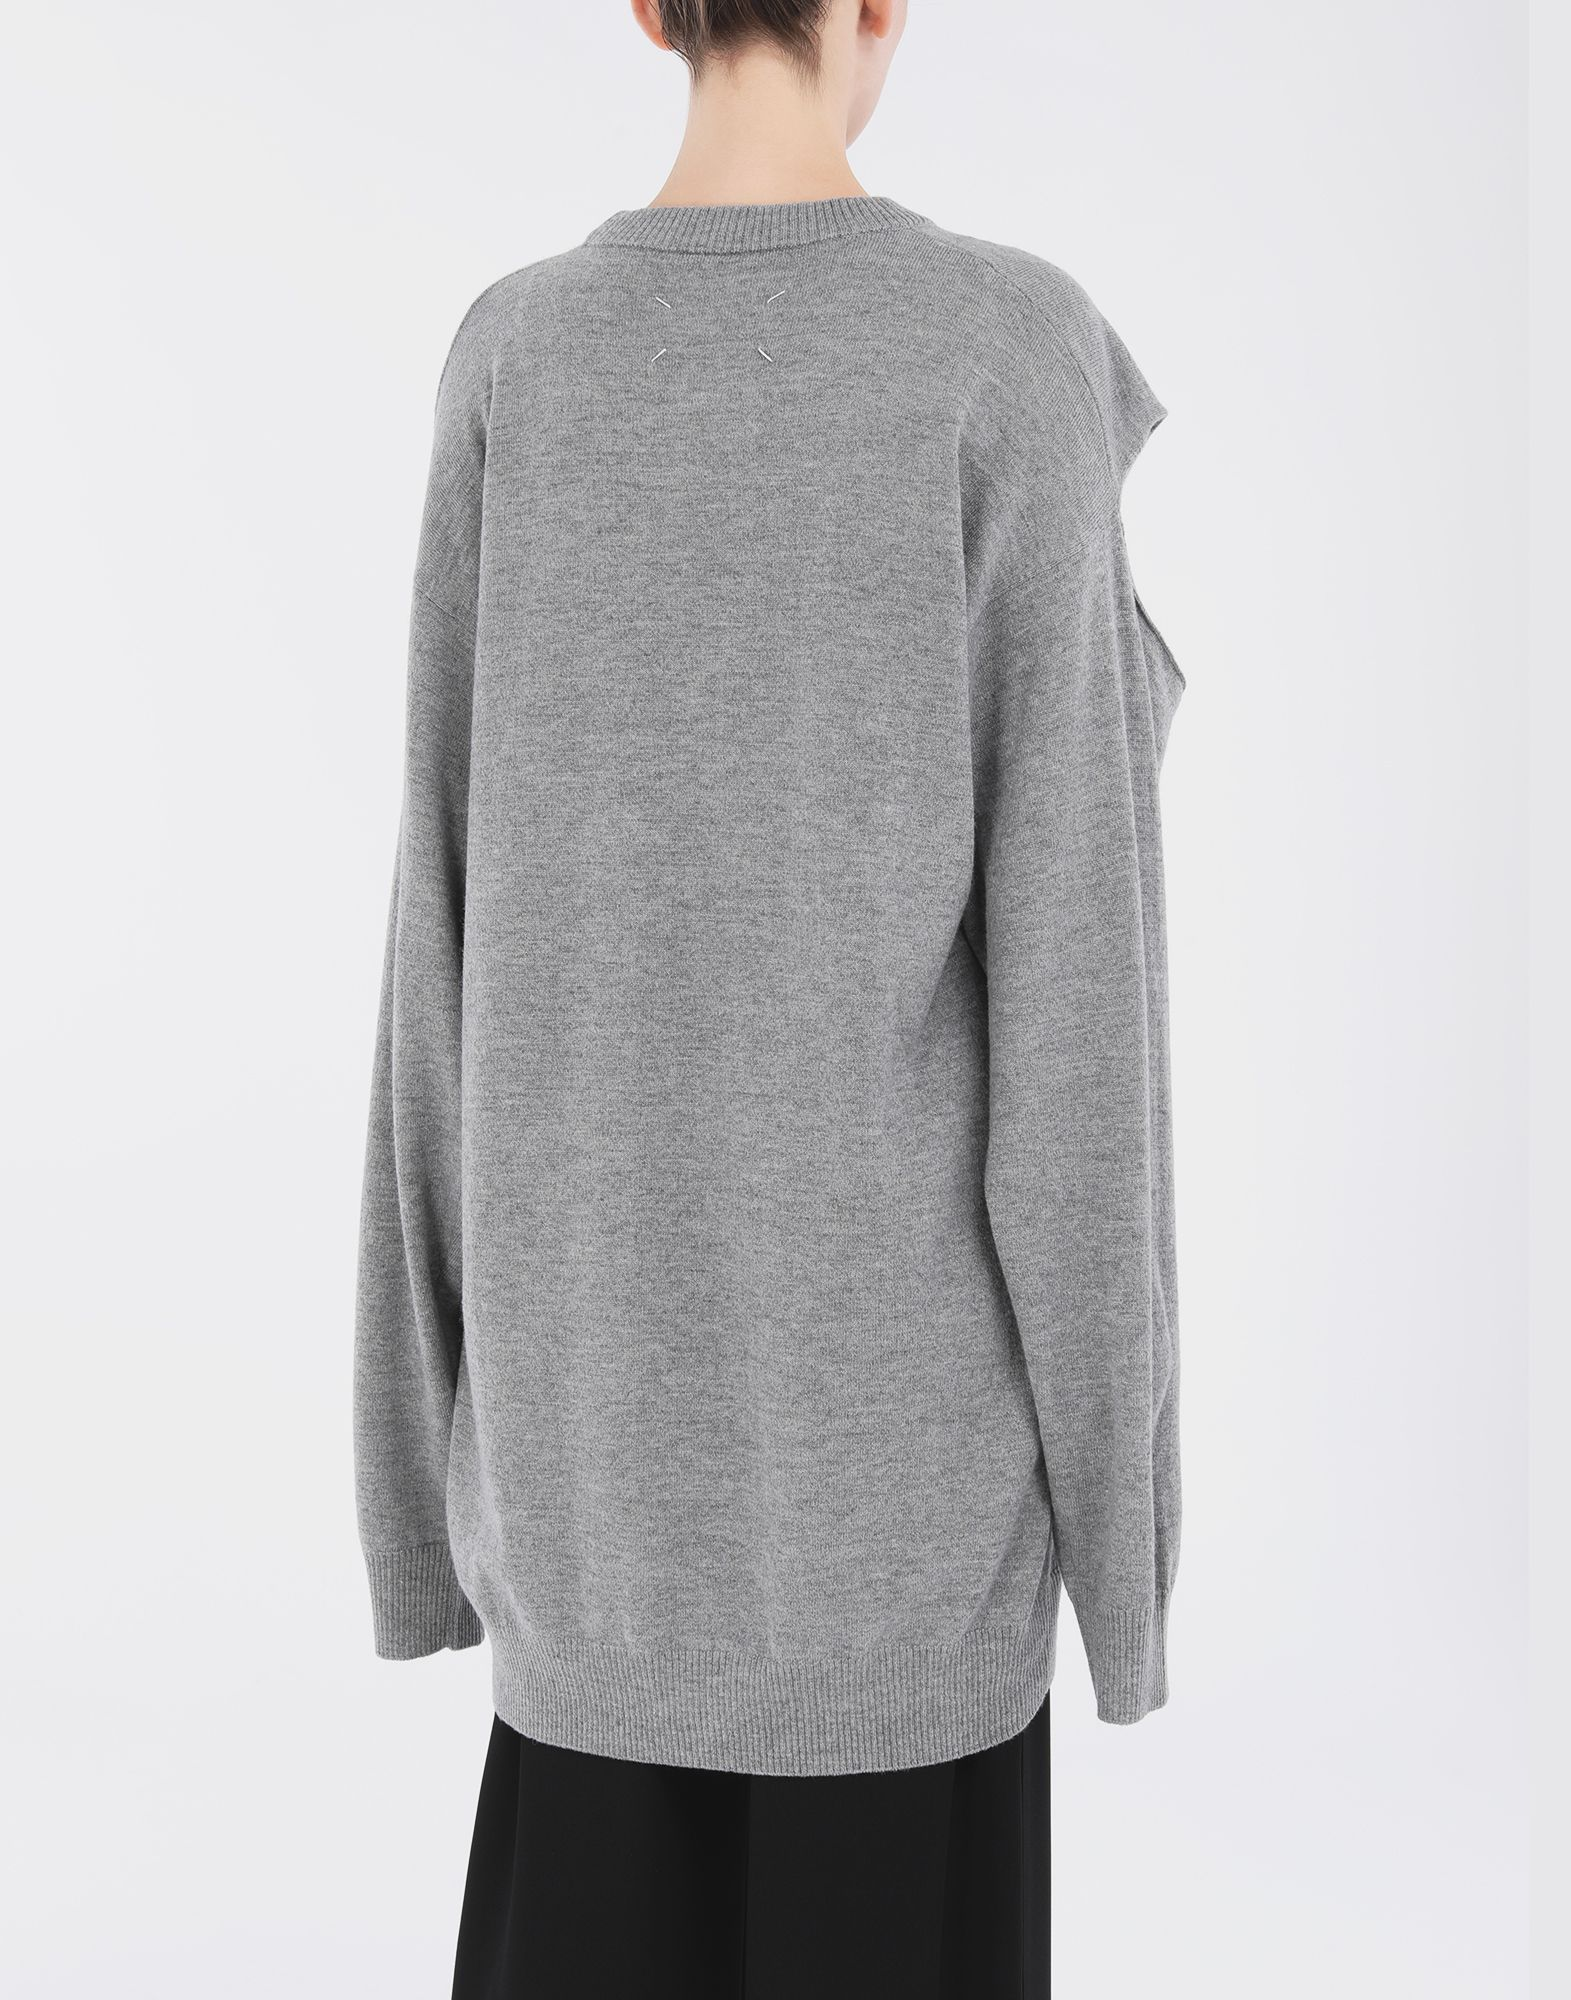 MAISON MARGIELA Sweater cut-out dress Dress Woman e